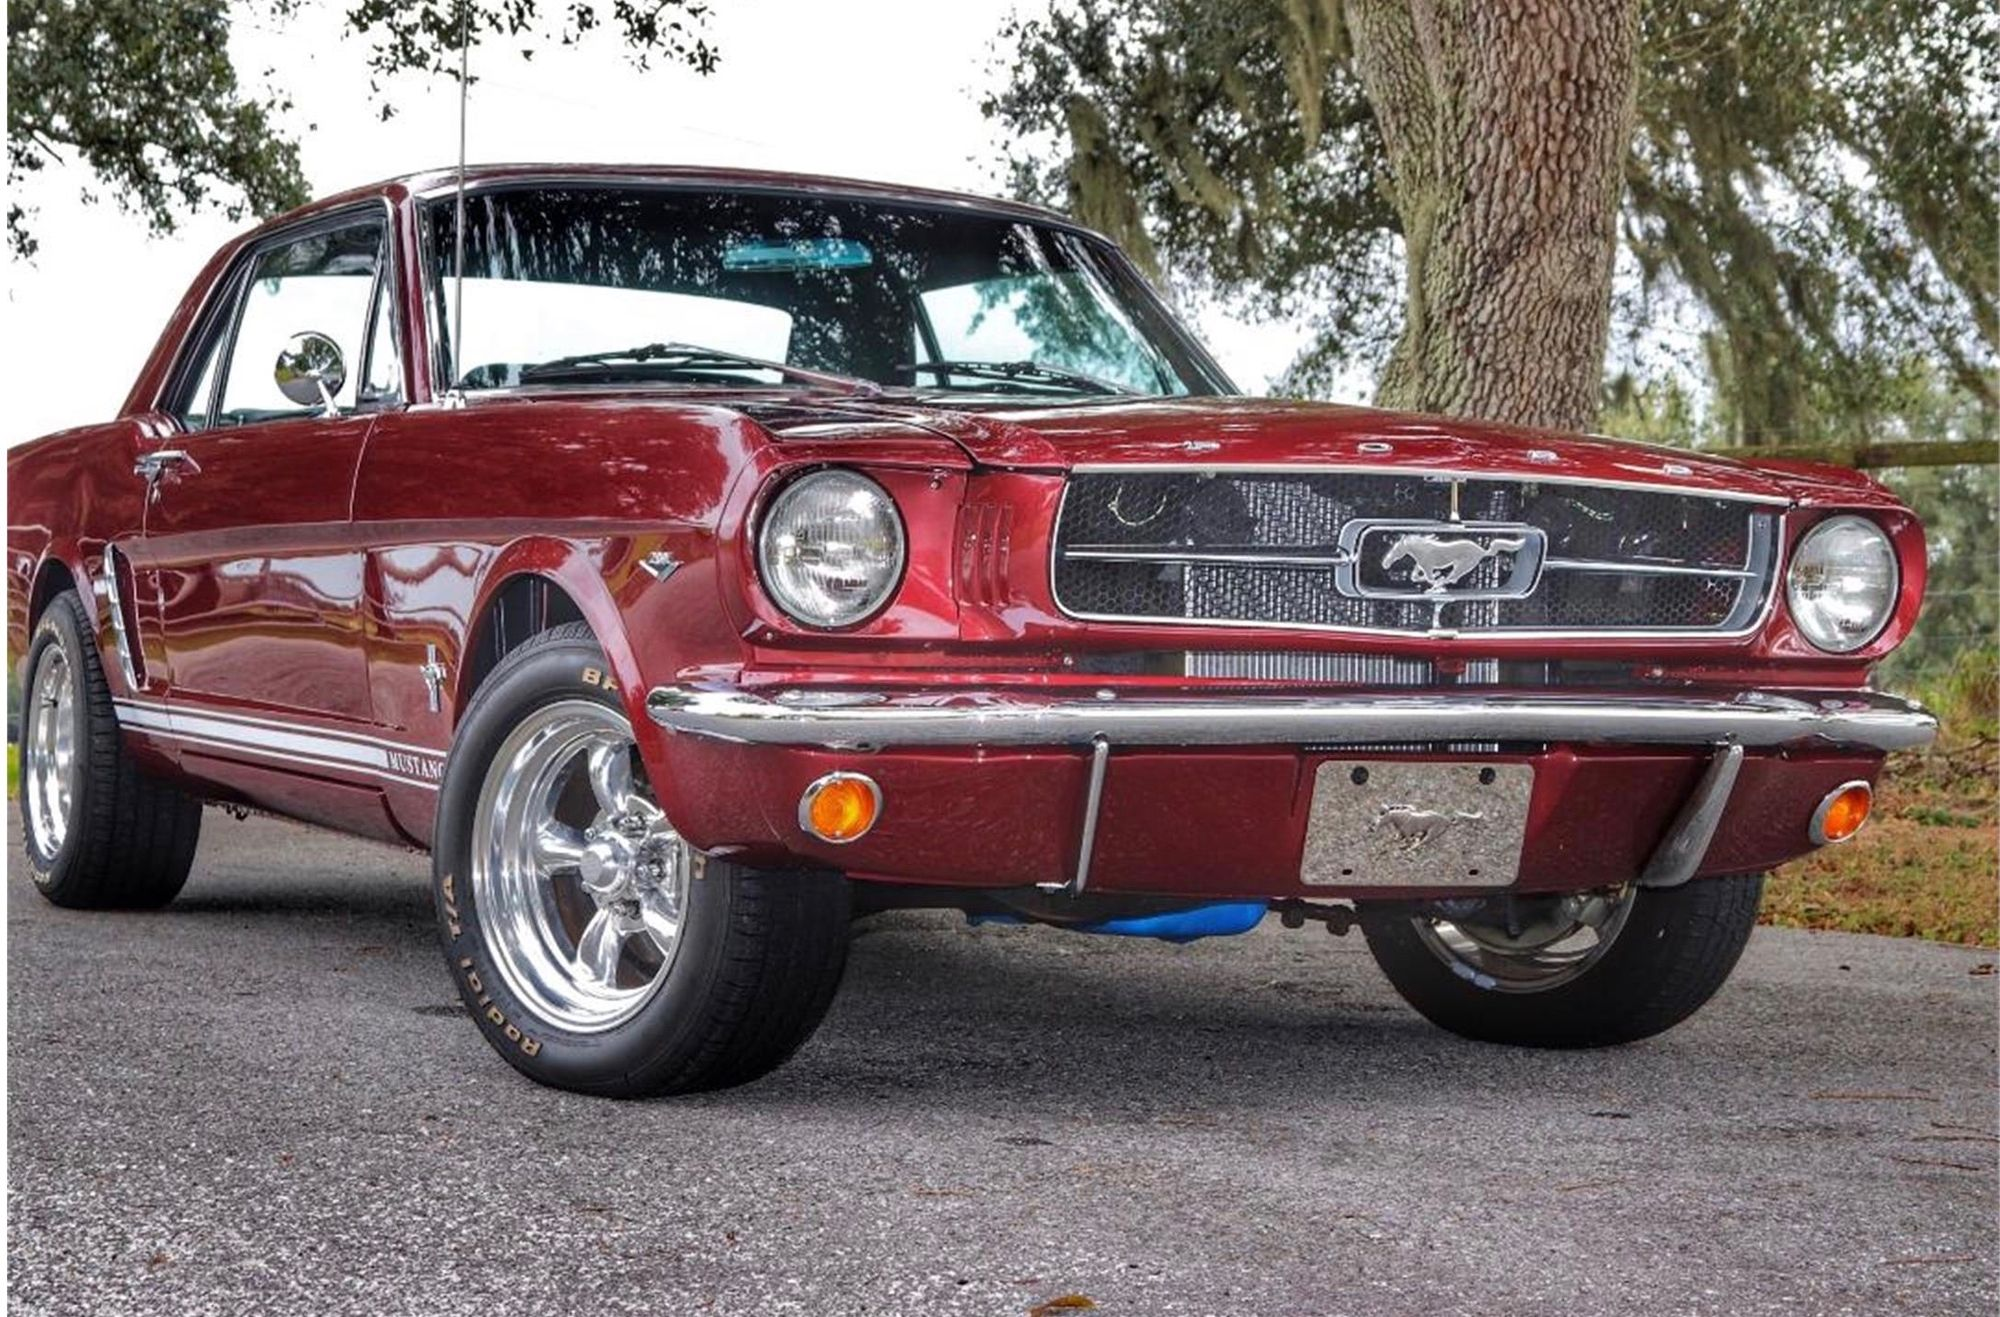 """<img src=""""1965-ford-mustang-front.jpg"""" alt=""""A 1965 Ford Mustang with aftermarket modifications could get antique tag revoked"""">"""